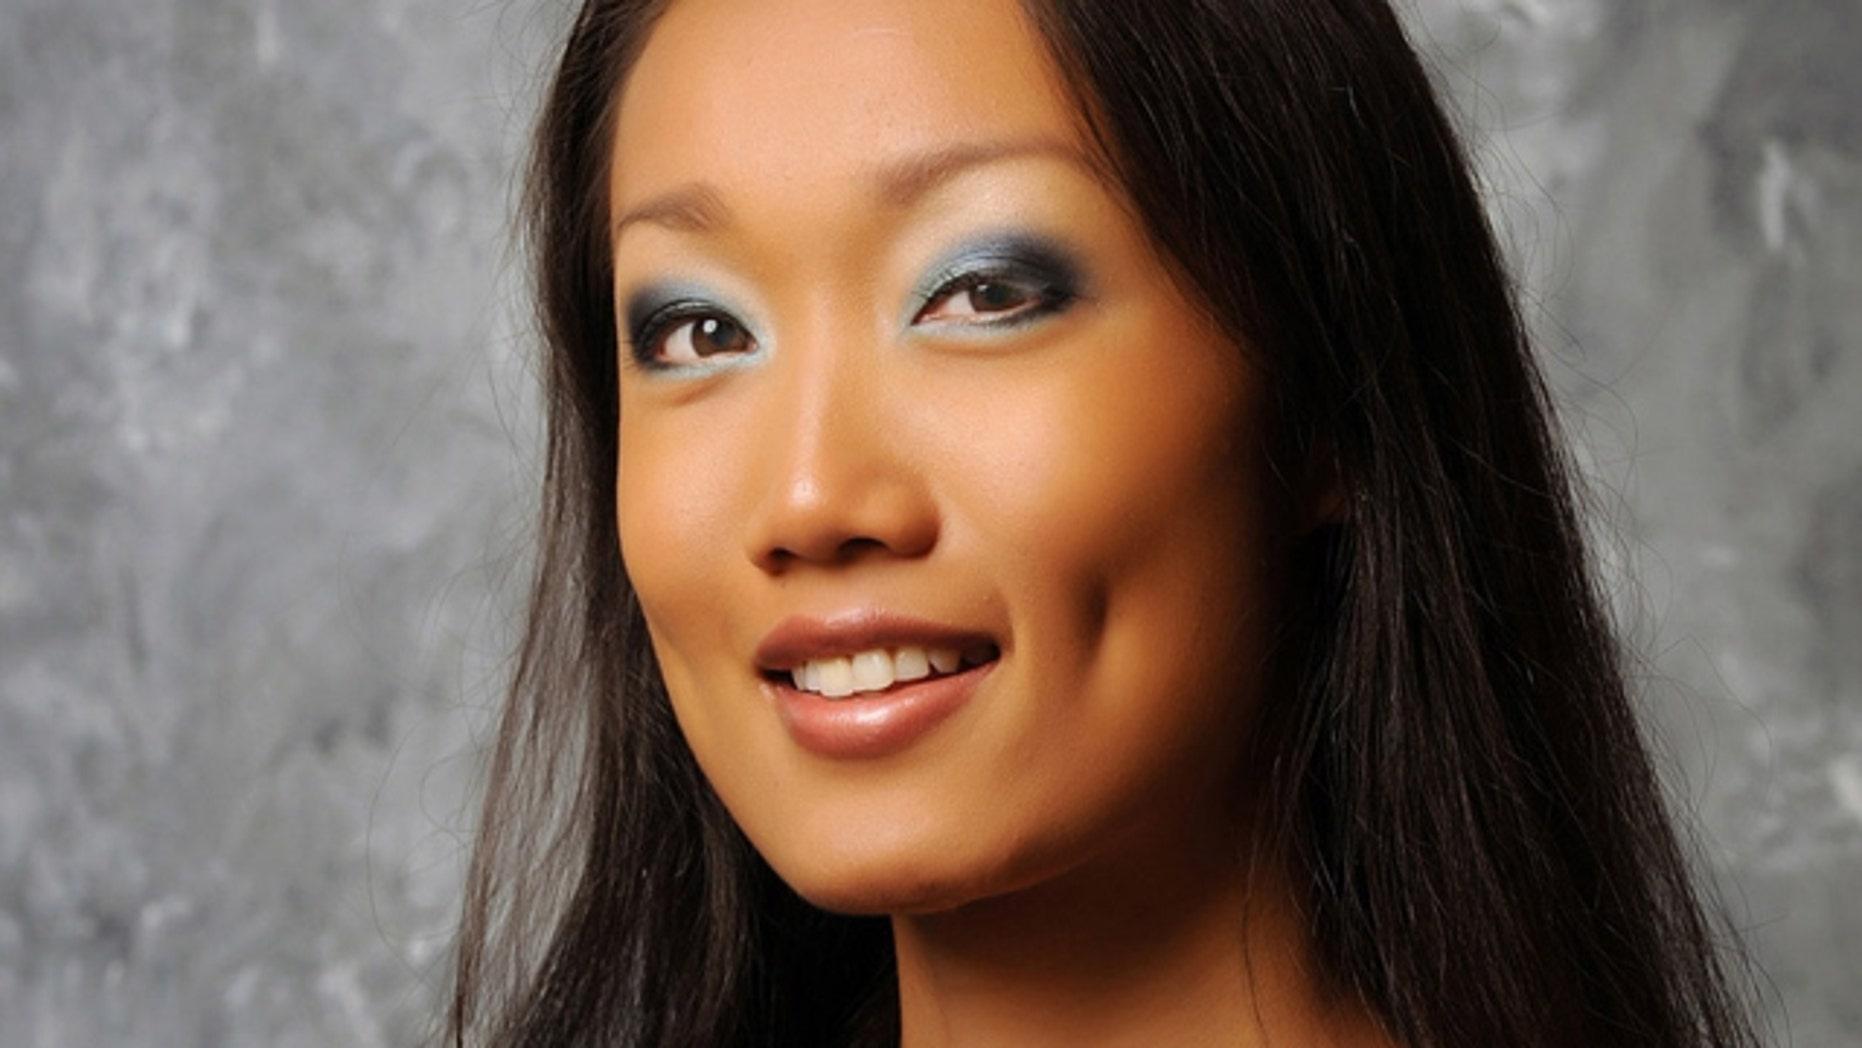 This August 2008 file photo released by Horizon Eye Specialists & Lasik Center shows Rebecca Zahau.